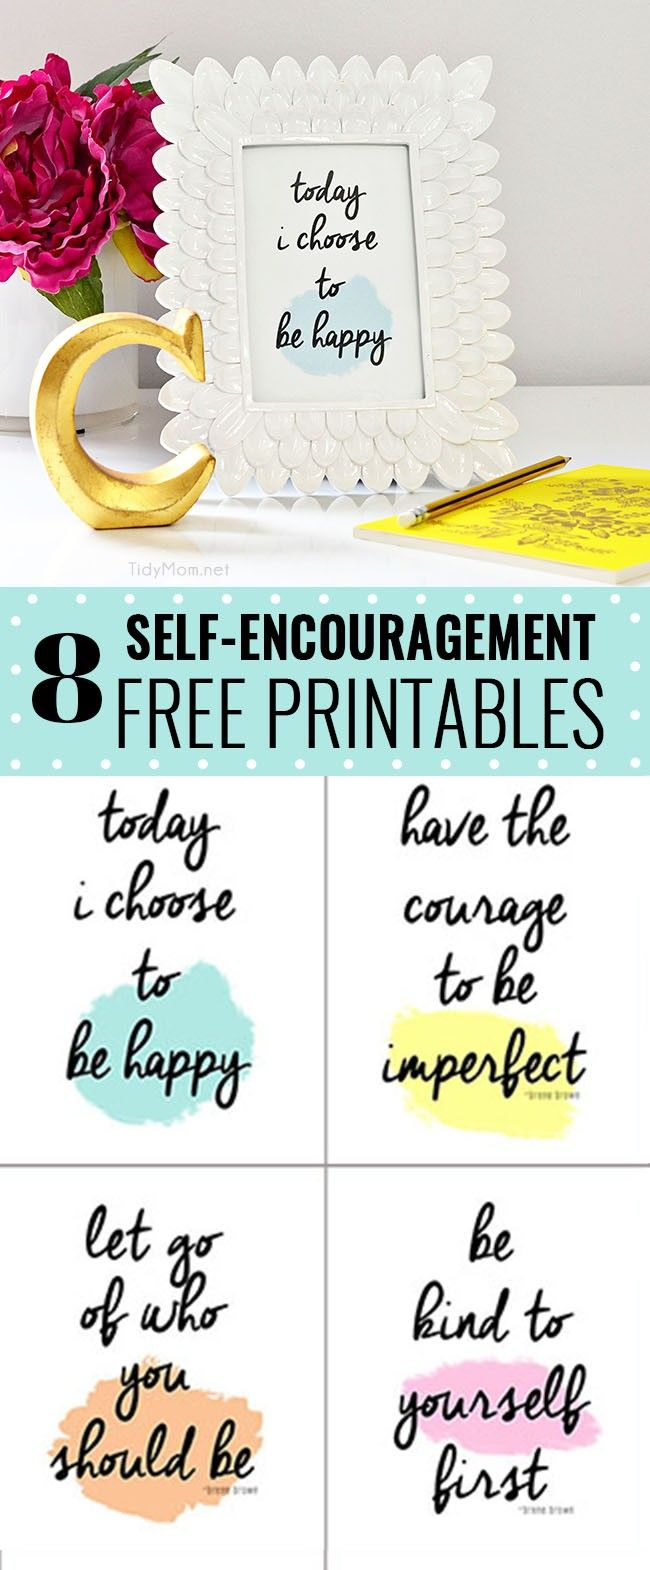 89 best Printables images on Pinterest | Free printables, Merry ...